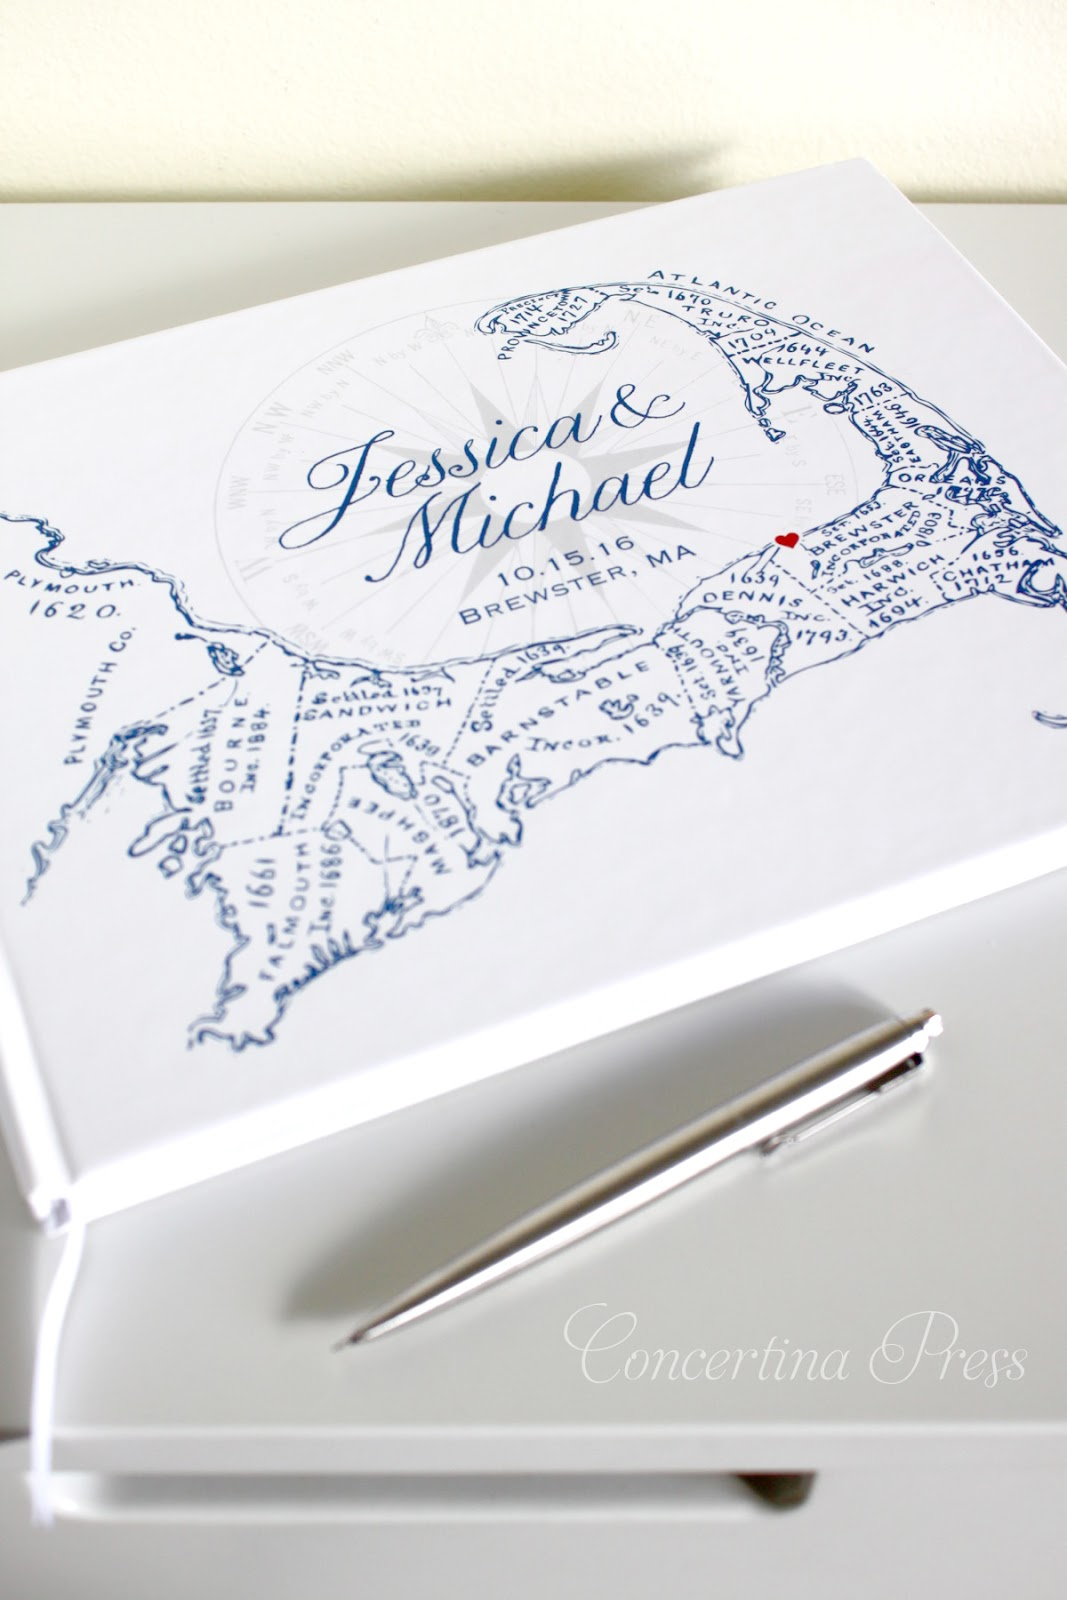 Cape Cod Map Guestbook from Concertina Press